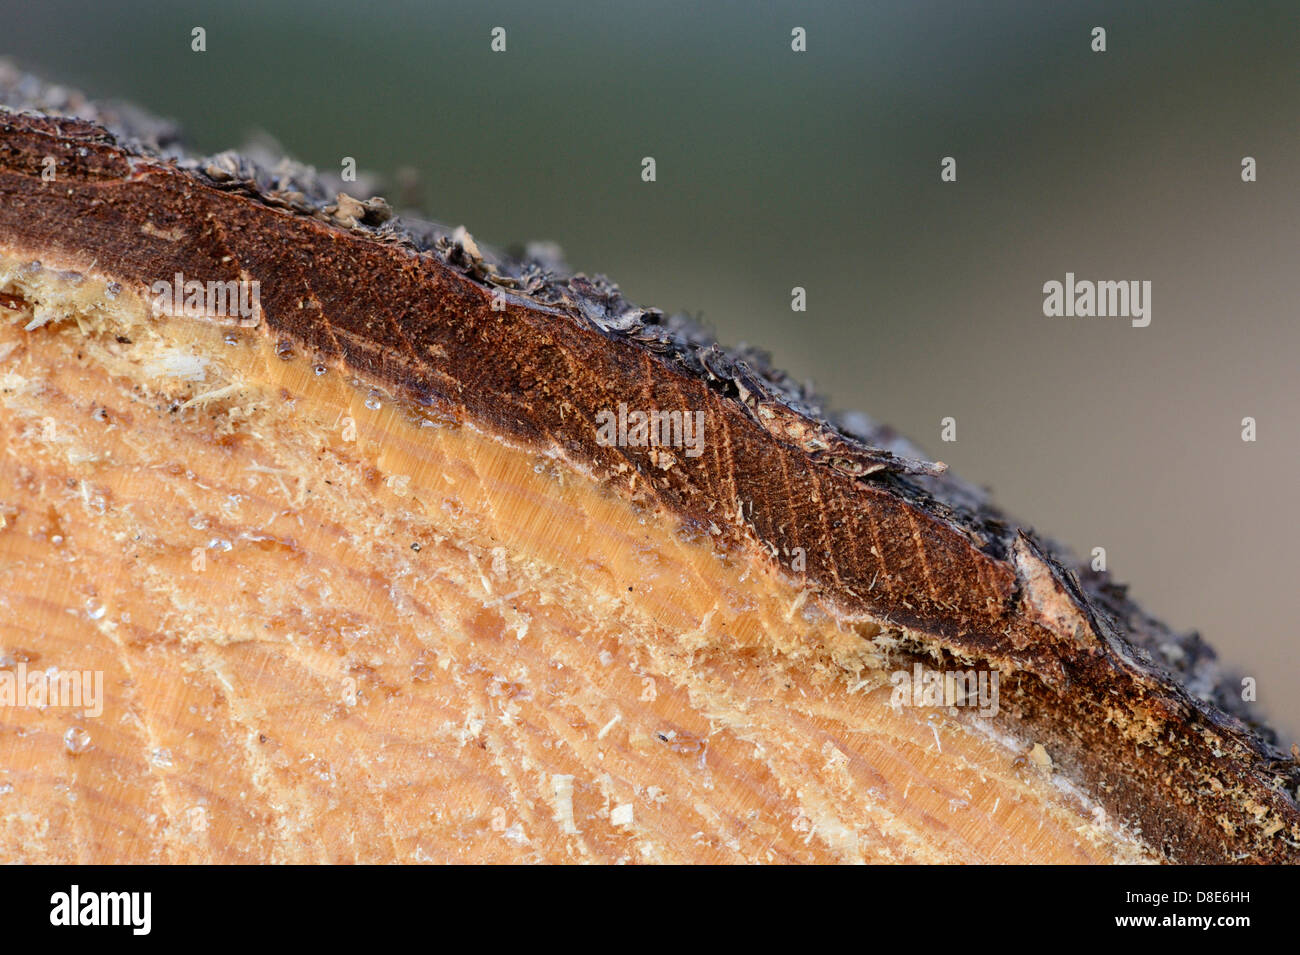 Cut of a tree trunk from a Norway Spruce (Picea abies), macro shot - Stock Image